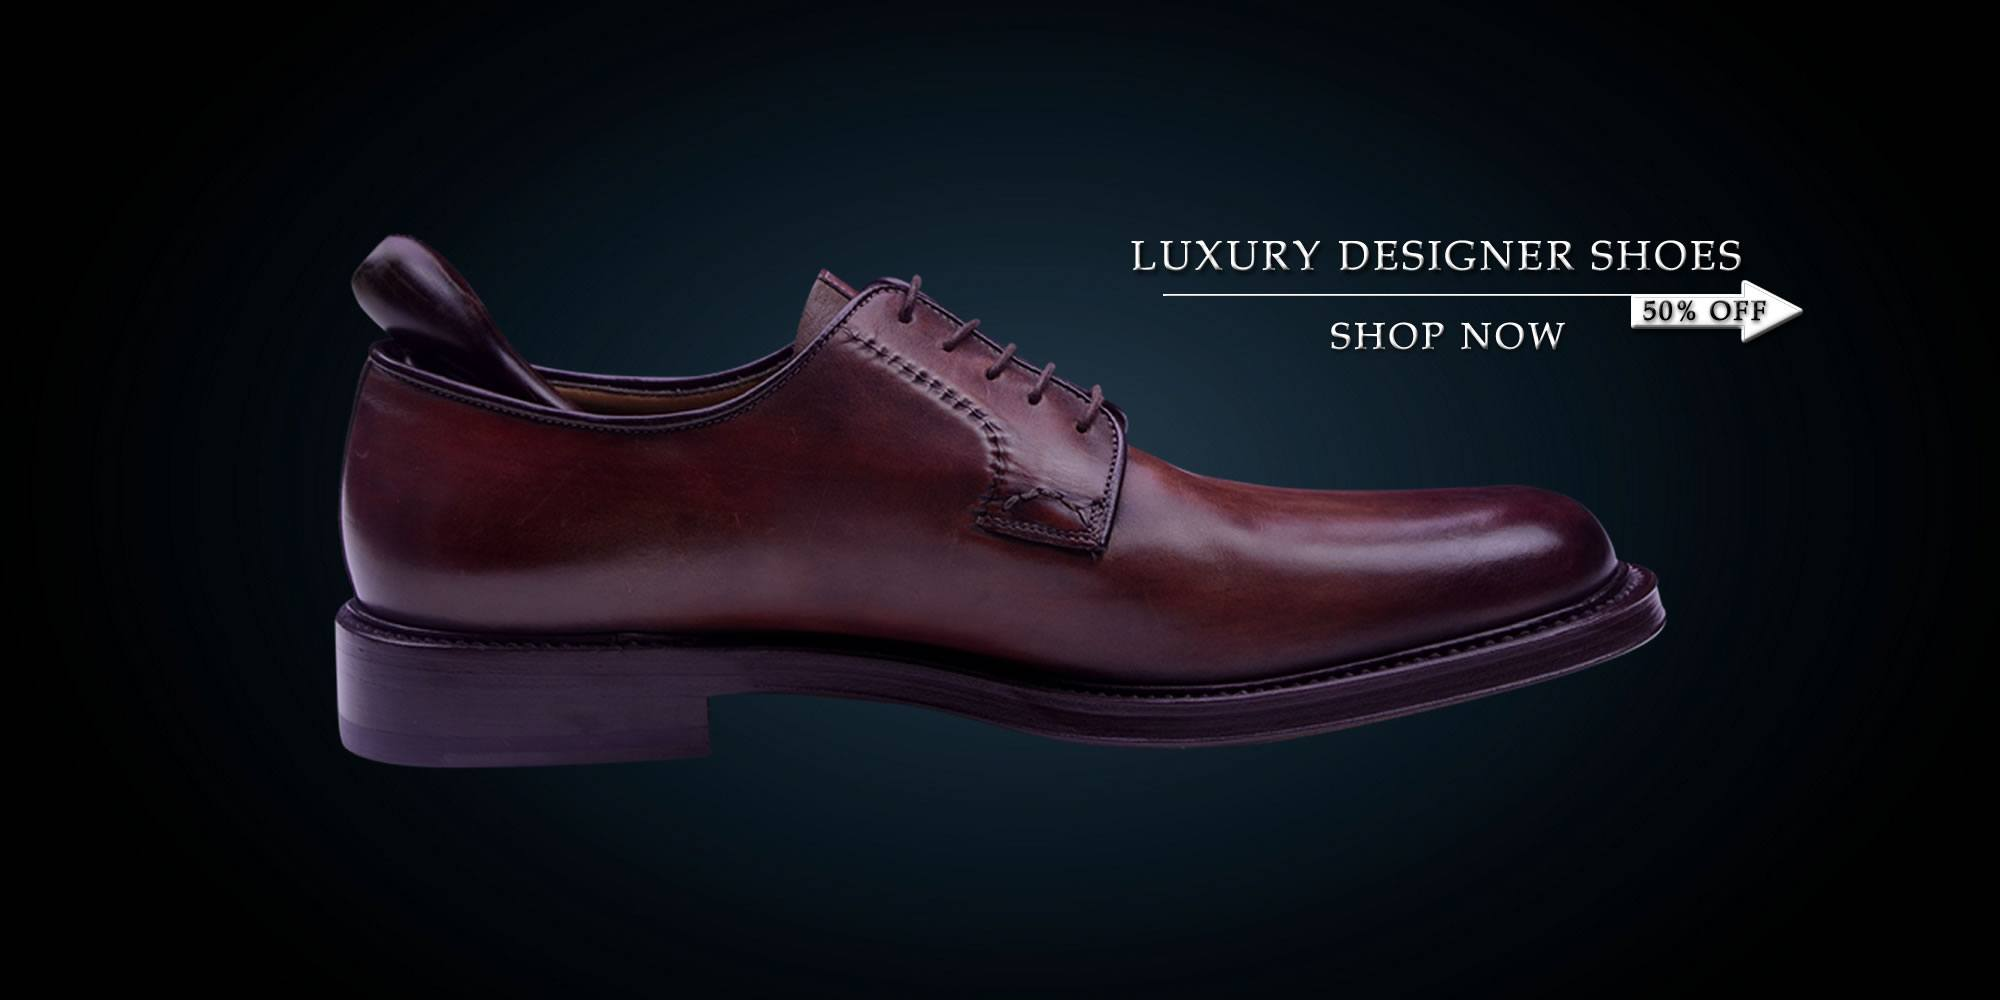 LUXURY DESIGNER SHOES ON SALE   OVERSTOCKDESIGNERS   VANCOUVER BC